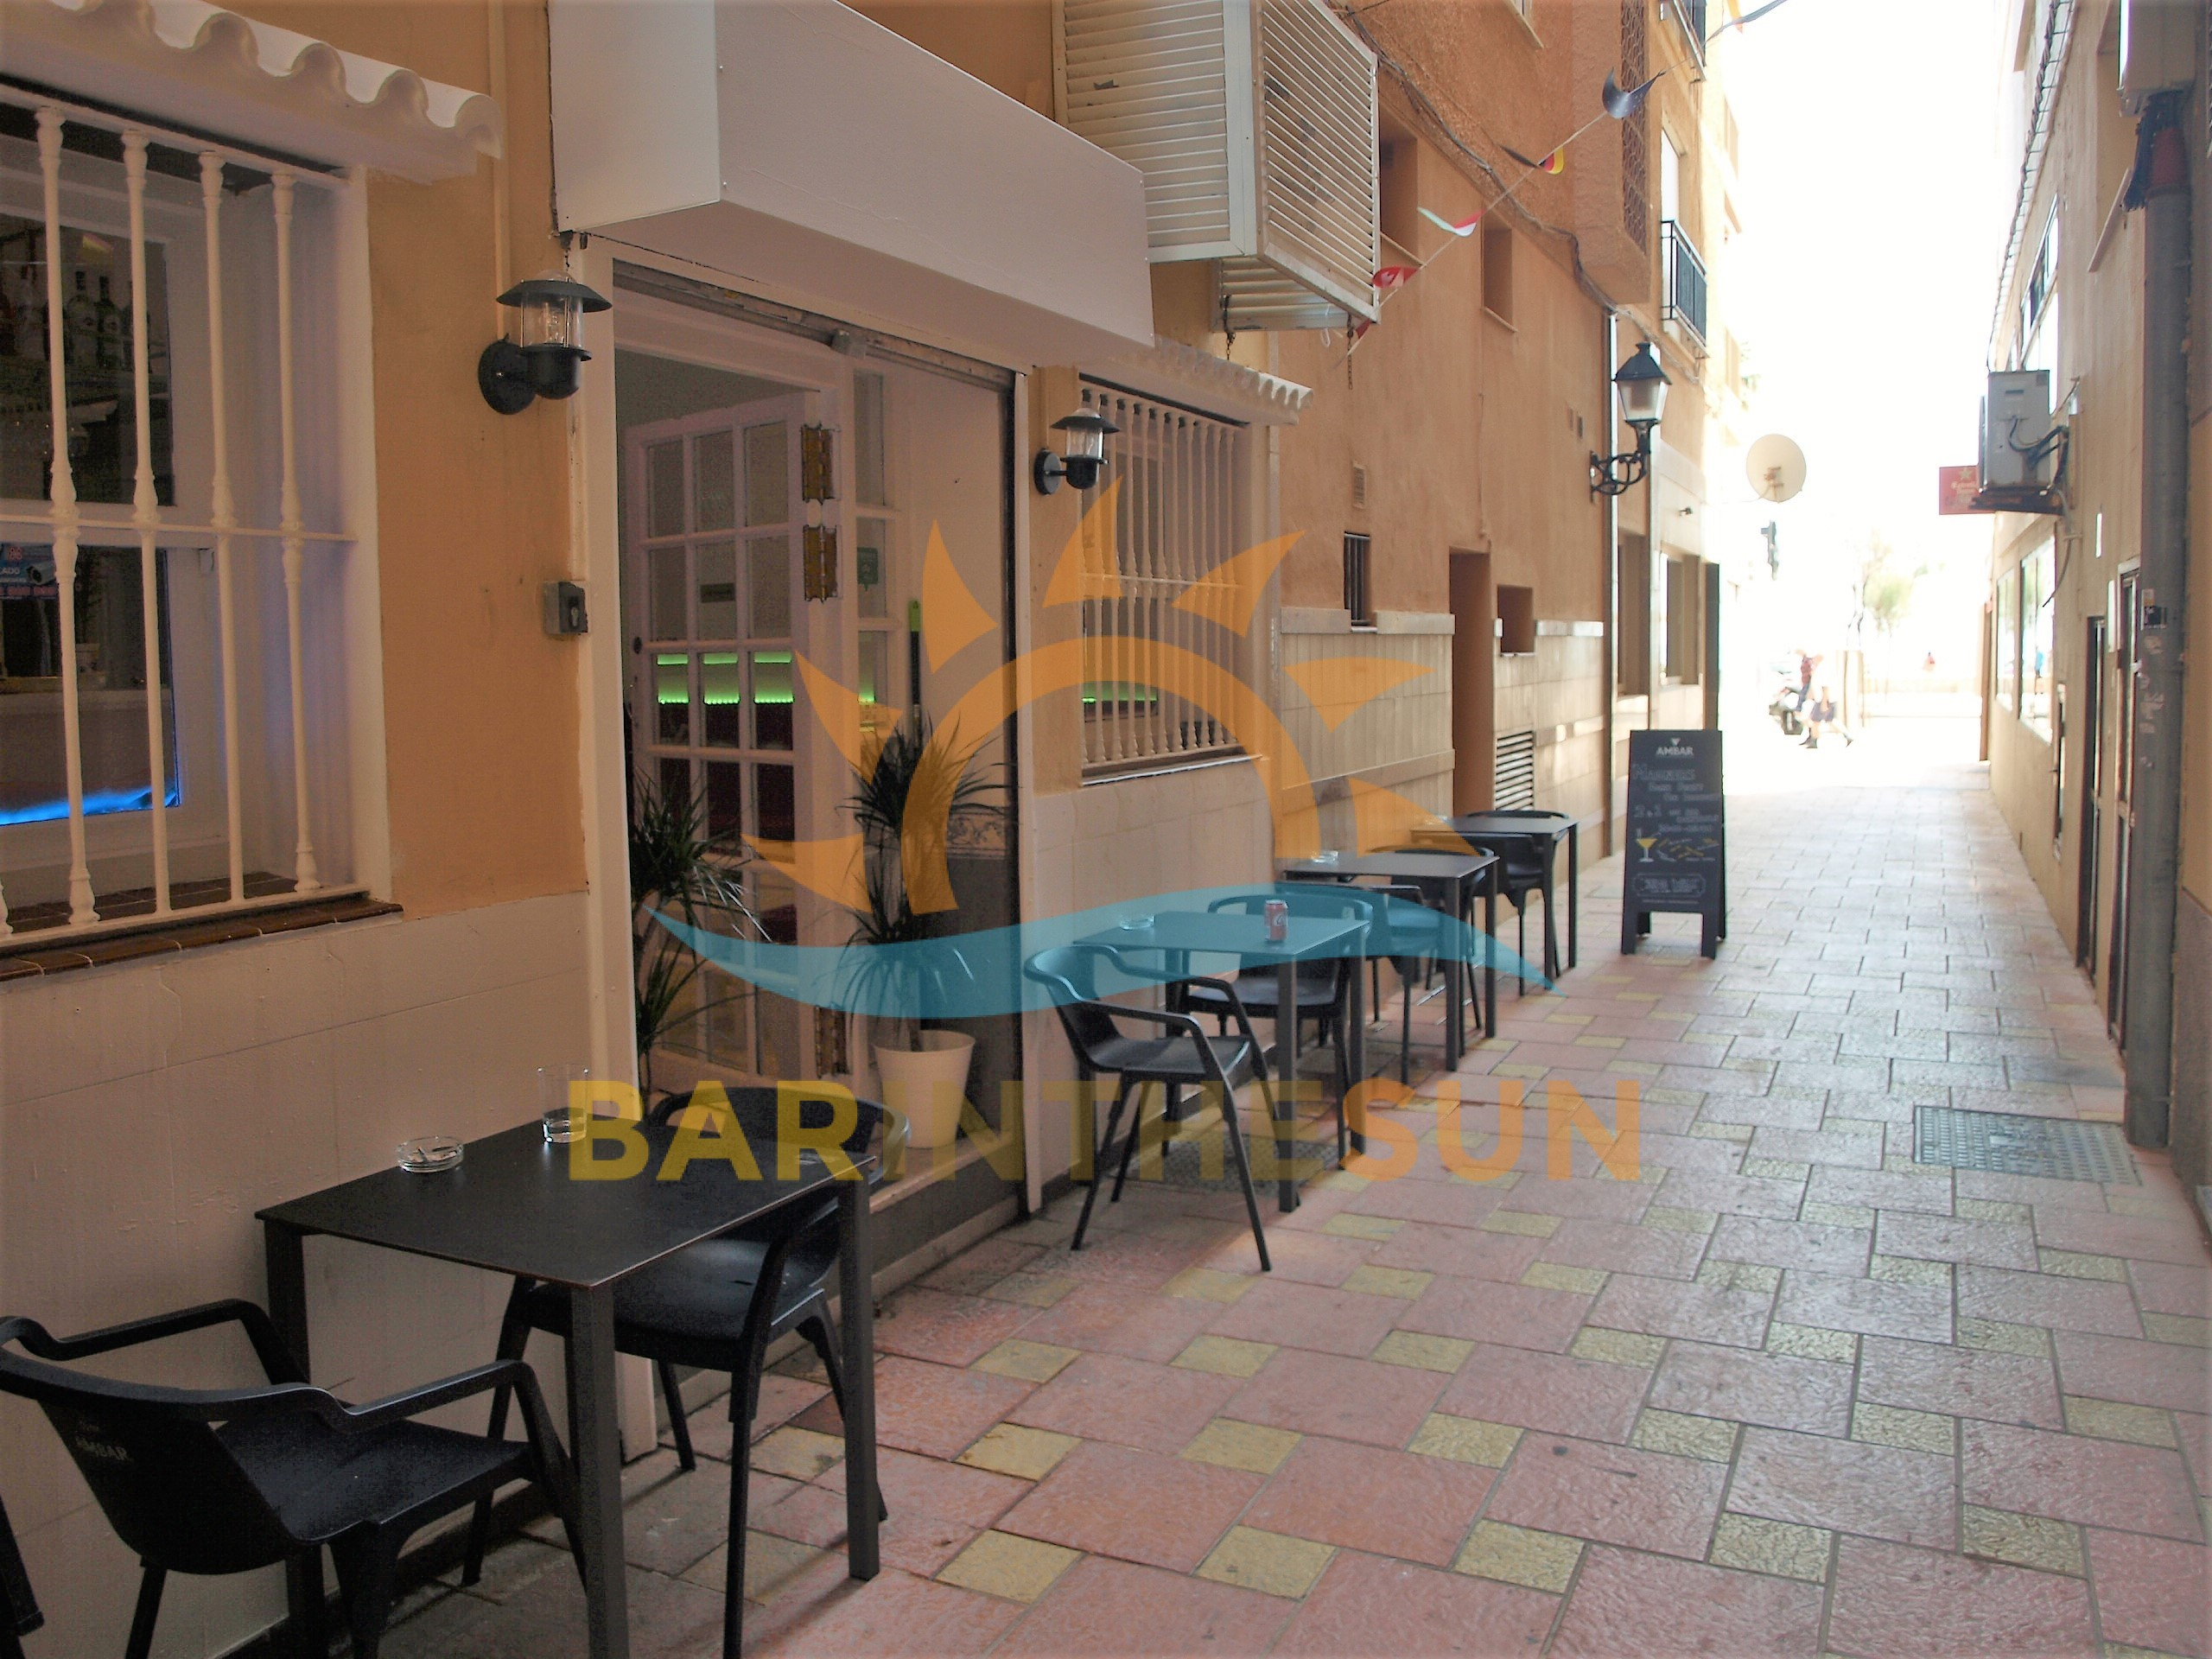 Cafeteria Bars For Sale in Los Boliches on The Costa del Sol, Bars For Sale in Spain